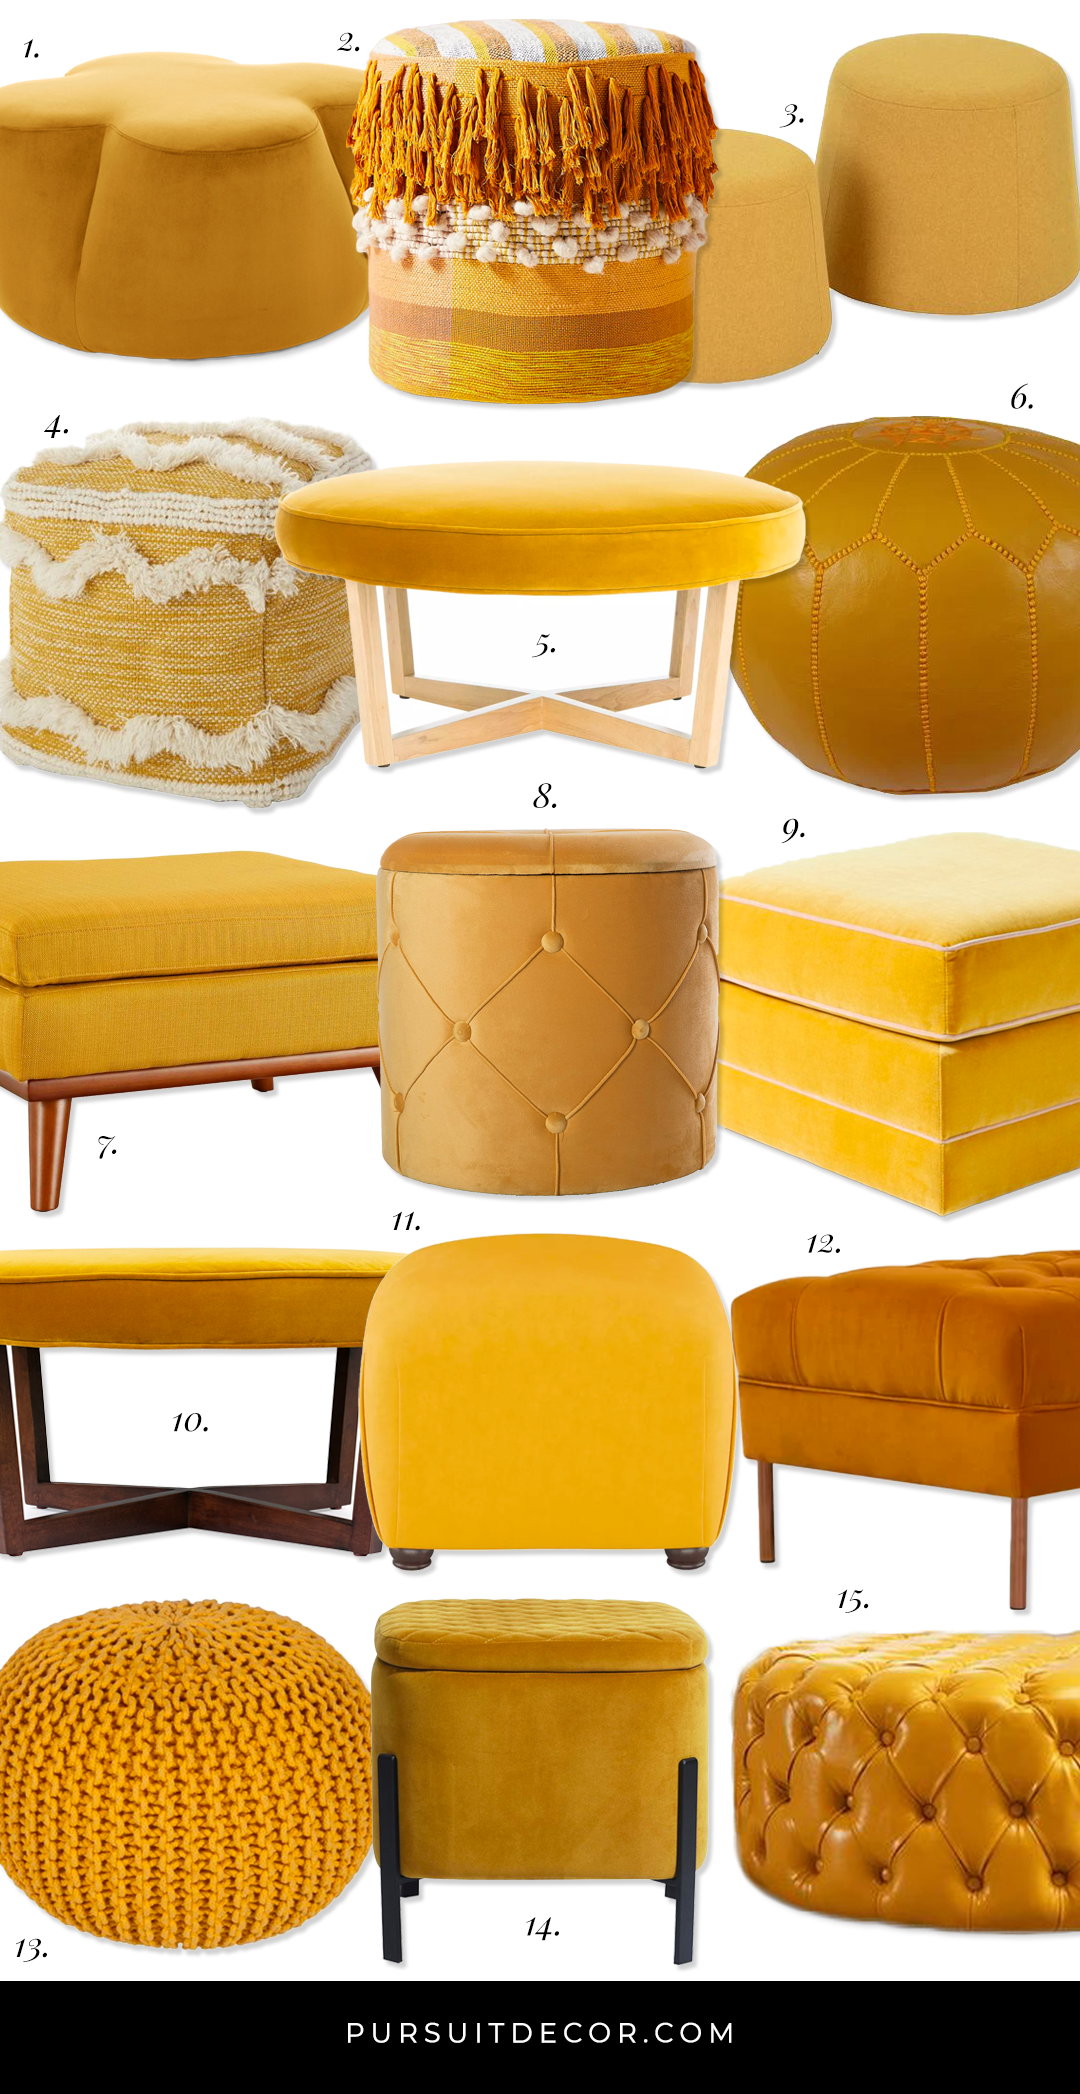 15 Stylish Mustard Yellow Ottomans and Poufs